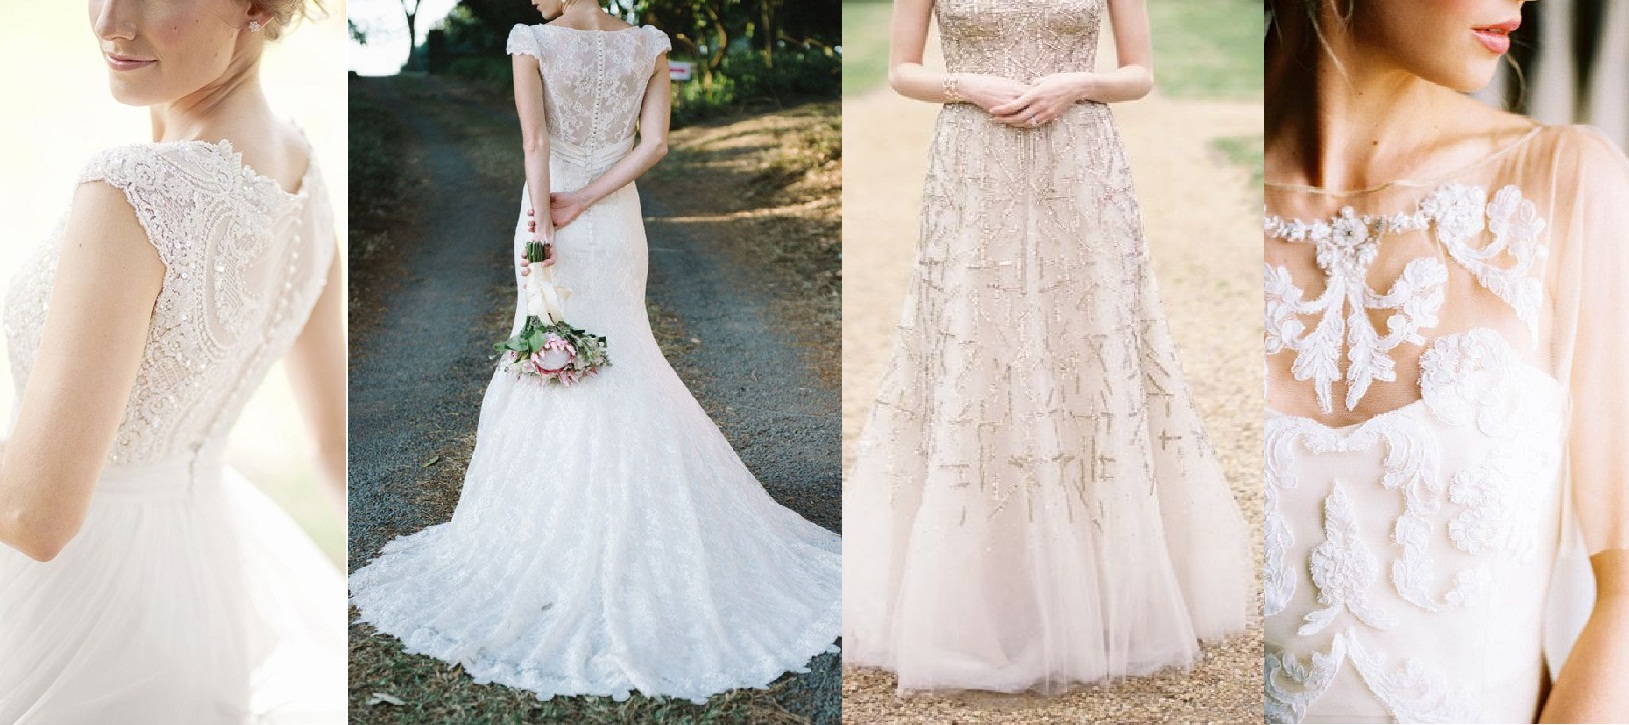 White Wedding Gowns Bridal Dresses Collection 2015-2016 (28)